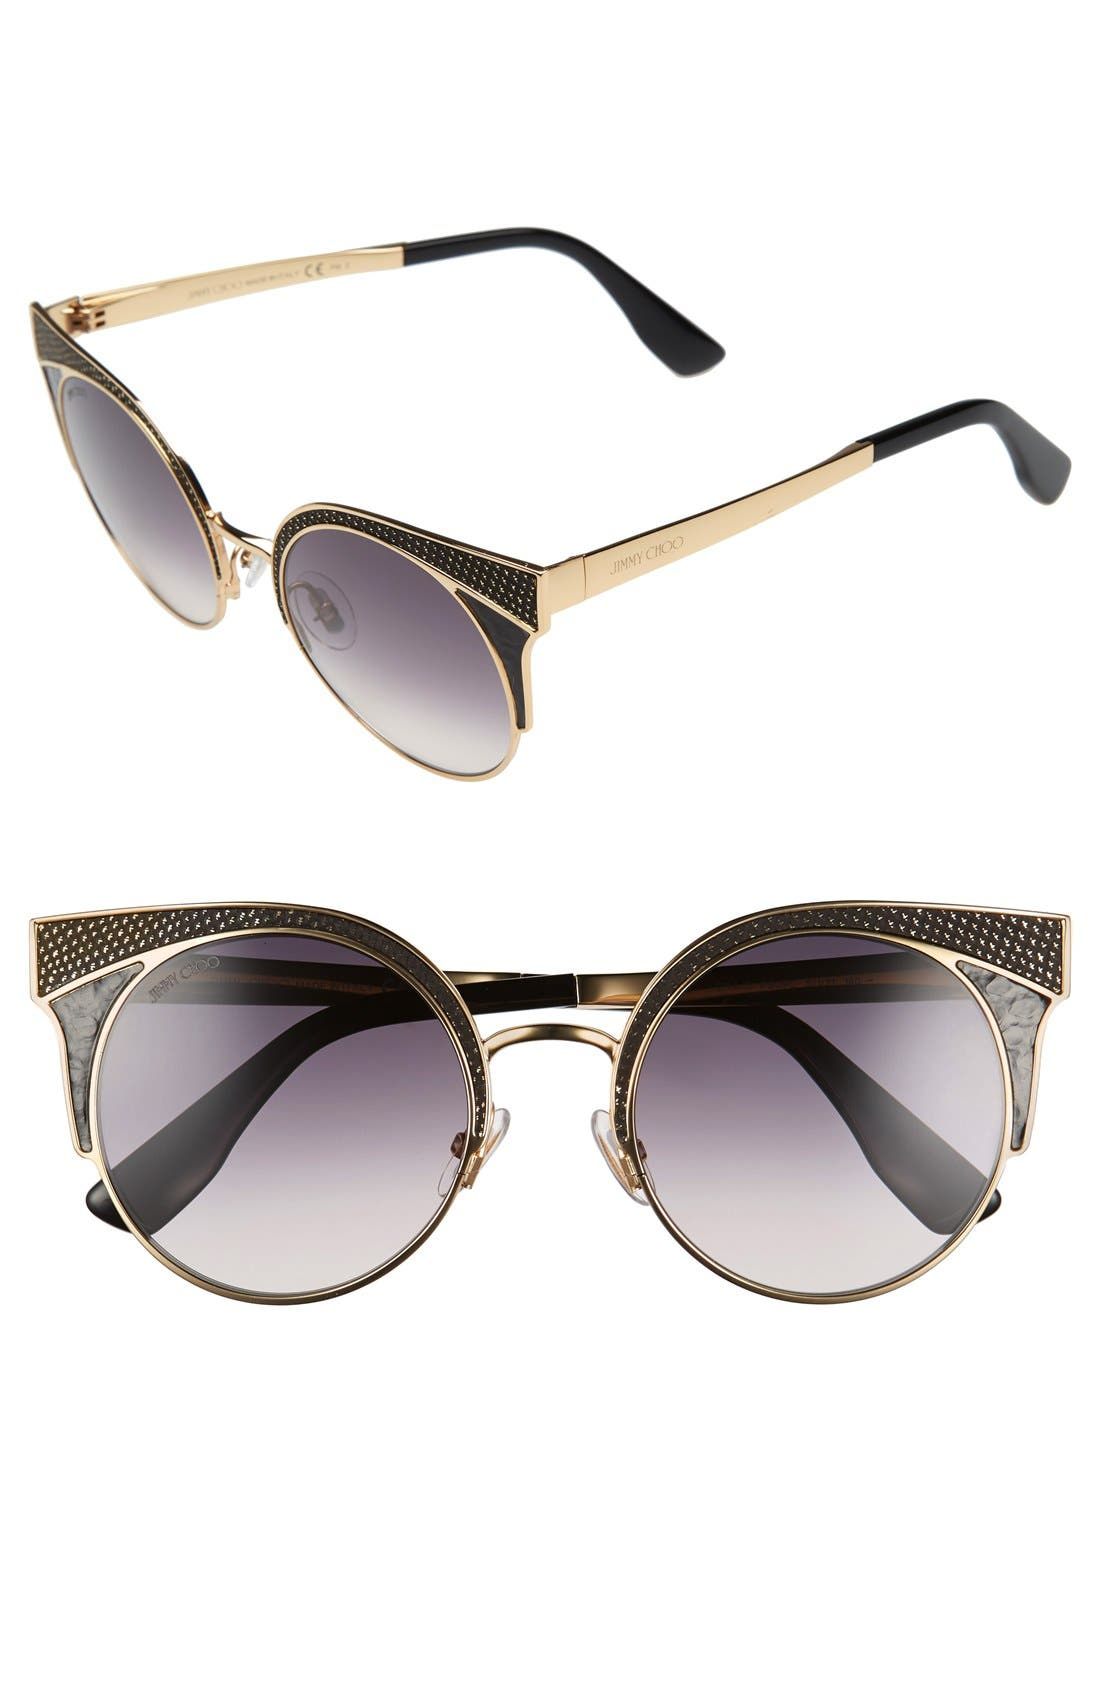 JIMMY CHOO 'Ora' 51mm Cat Eye Sunglasses, Main, color, 710